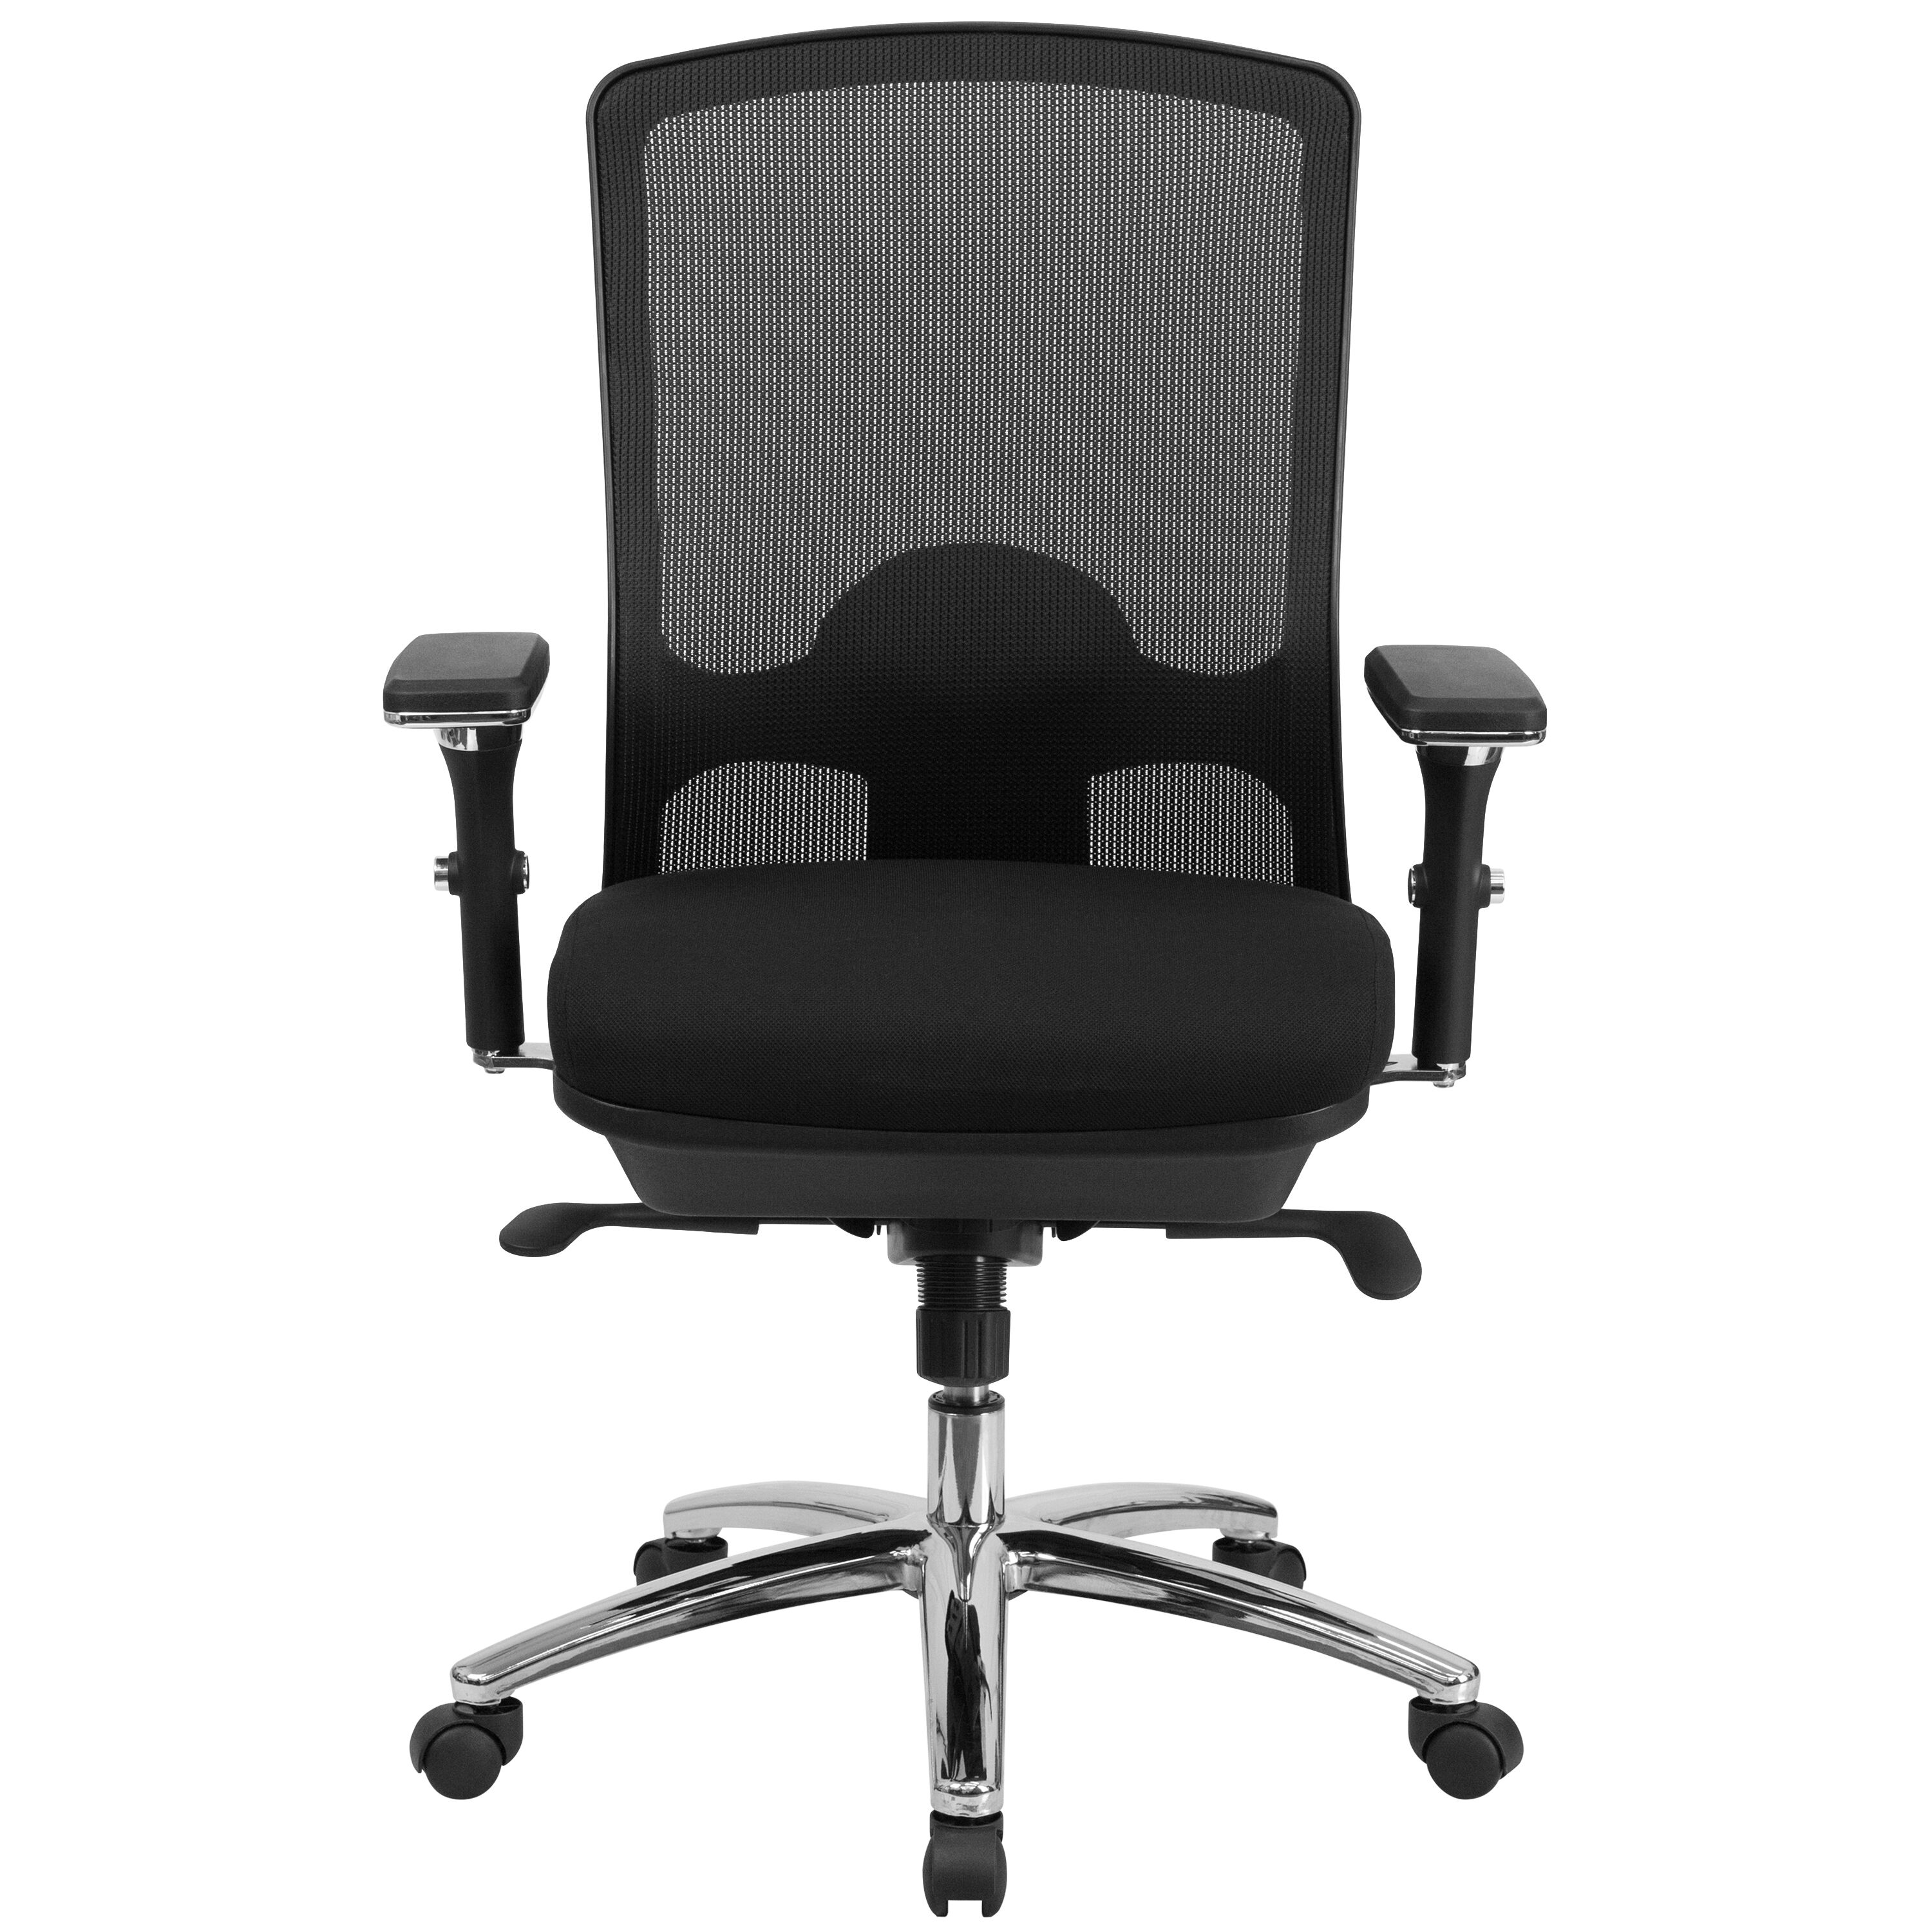 sc 1 st  Church Chairs 4 Less & Black 24/7 Use Mid-Back-350LB LQ-2-BK-GG | ChurchChairs4Less.com